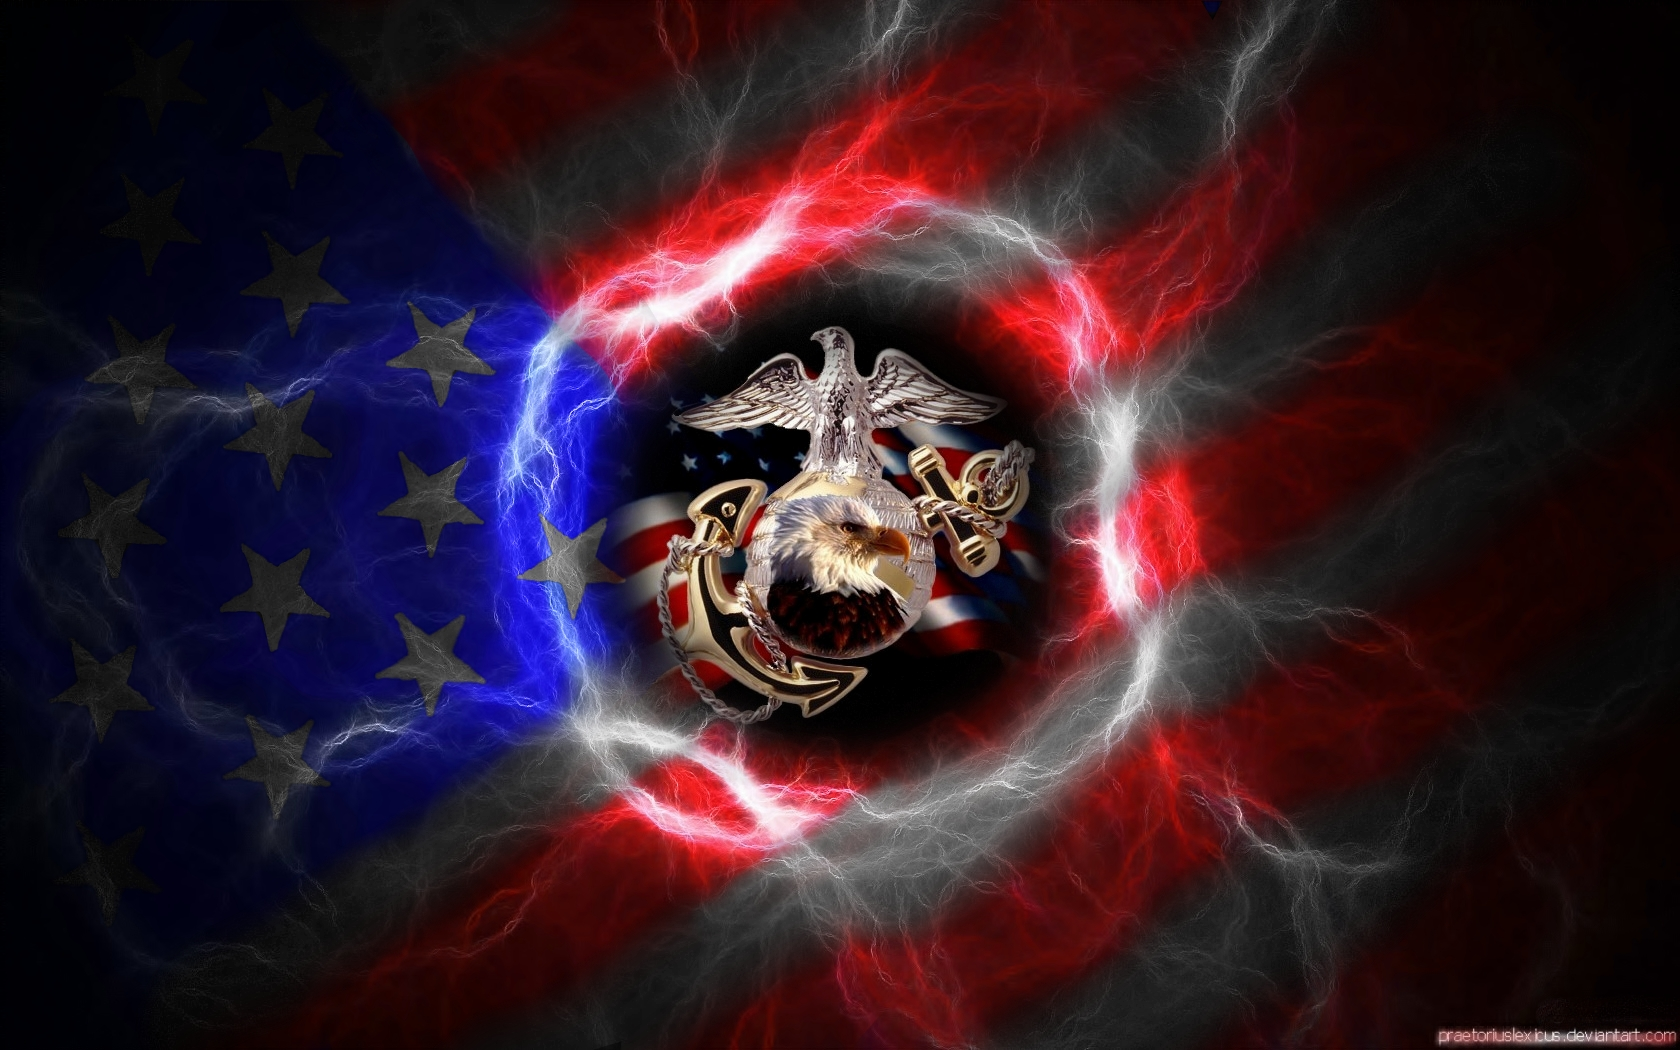 wallpaper USMC Wallpaper Images hd wallpaper background desktop 1680x1050